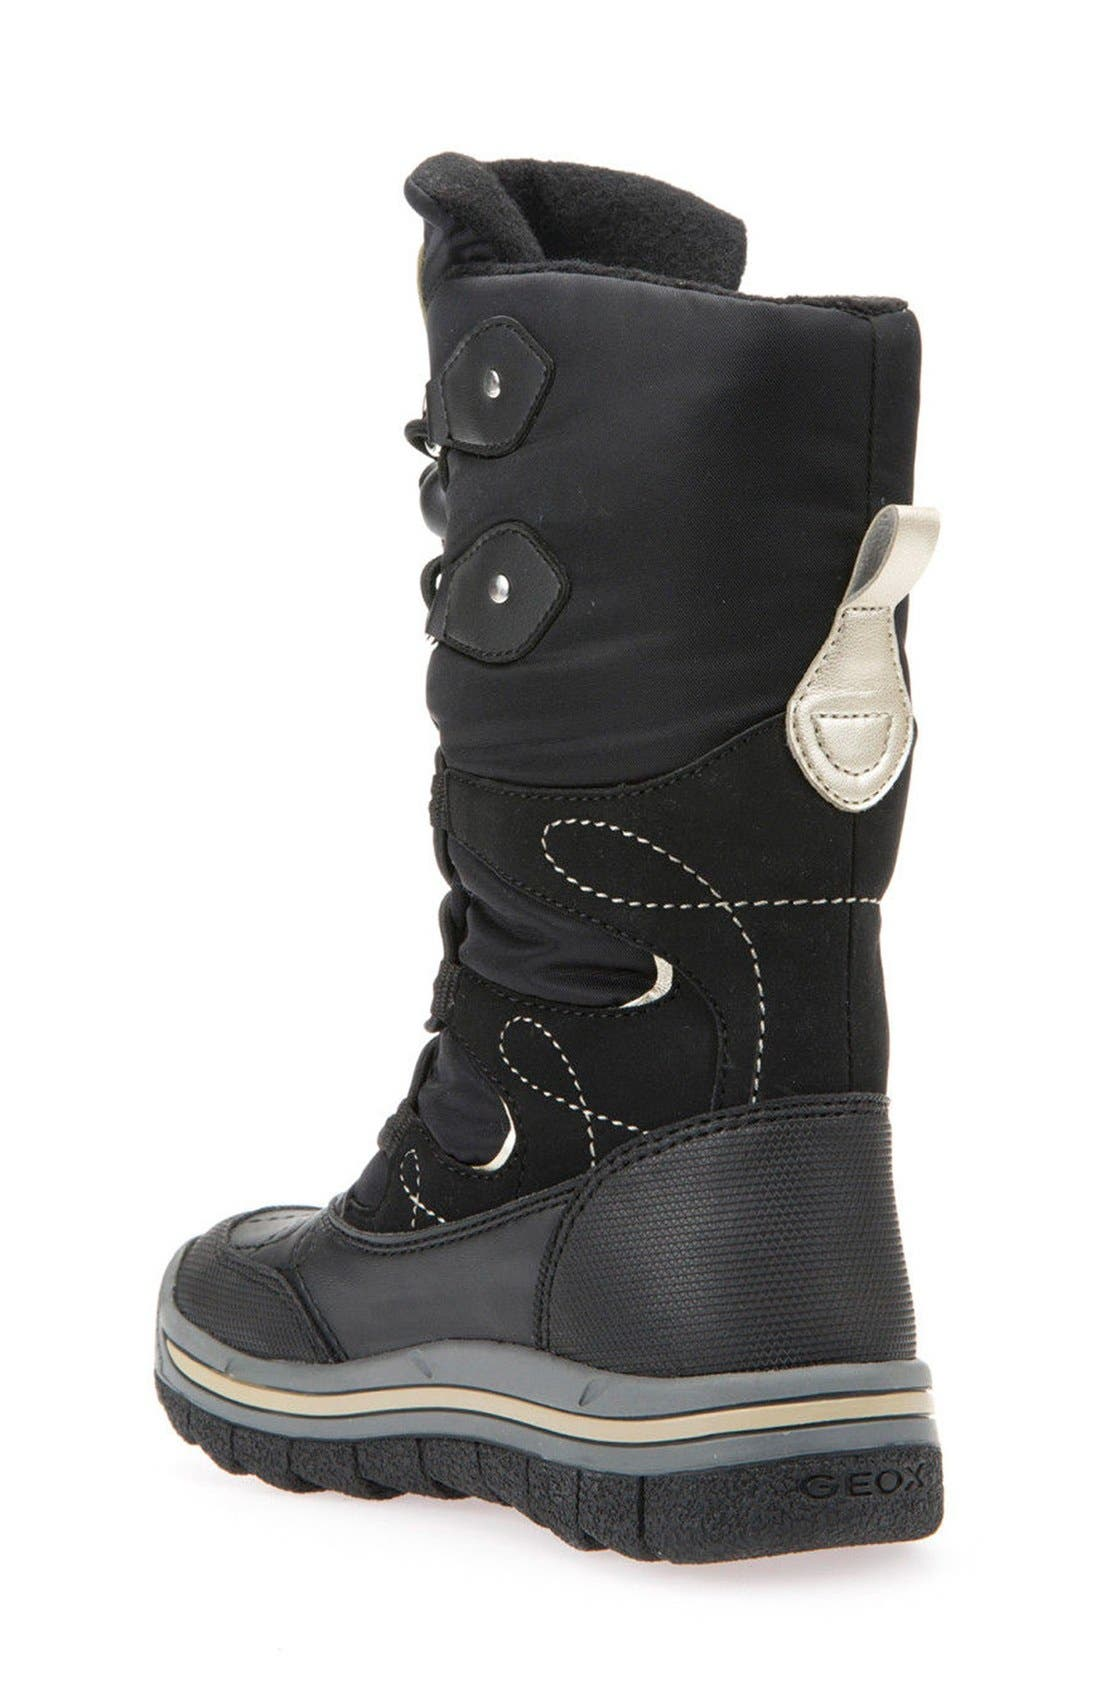 'Overland ABX' Waterproof Boot,                             Alternate thumbnail 2, color,                             Black/ Gold